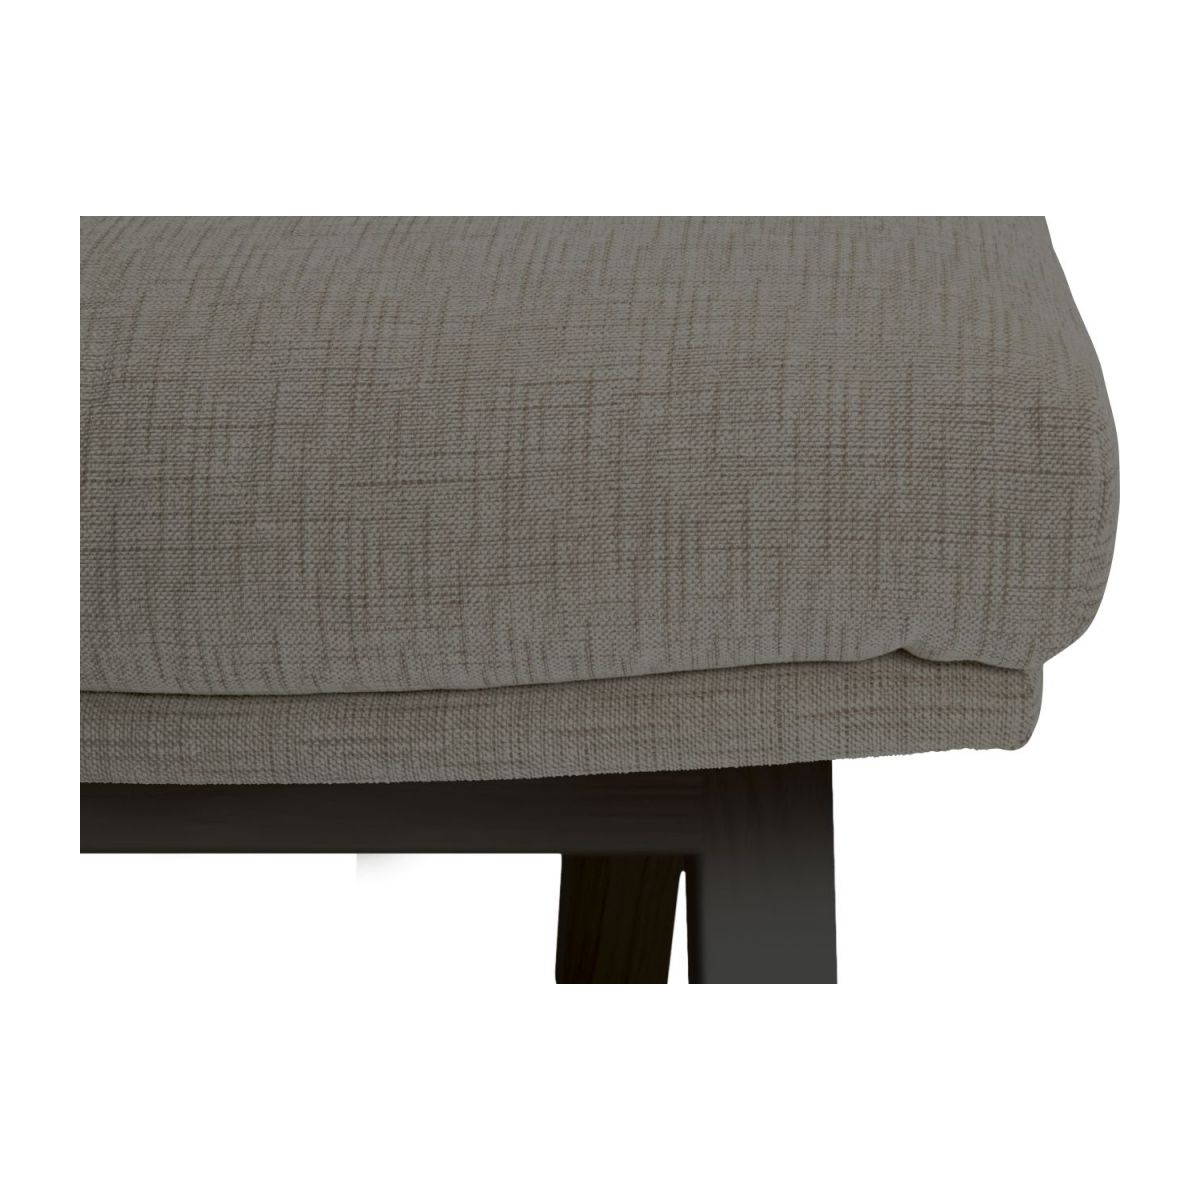 Footstool in Ancio fabric, river rock with dark legs n°6